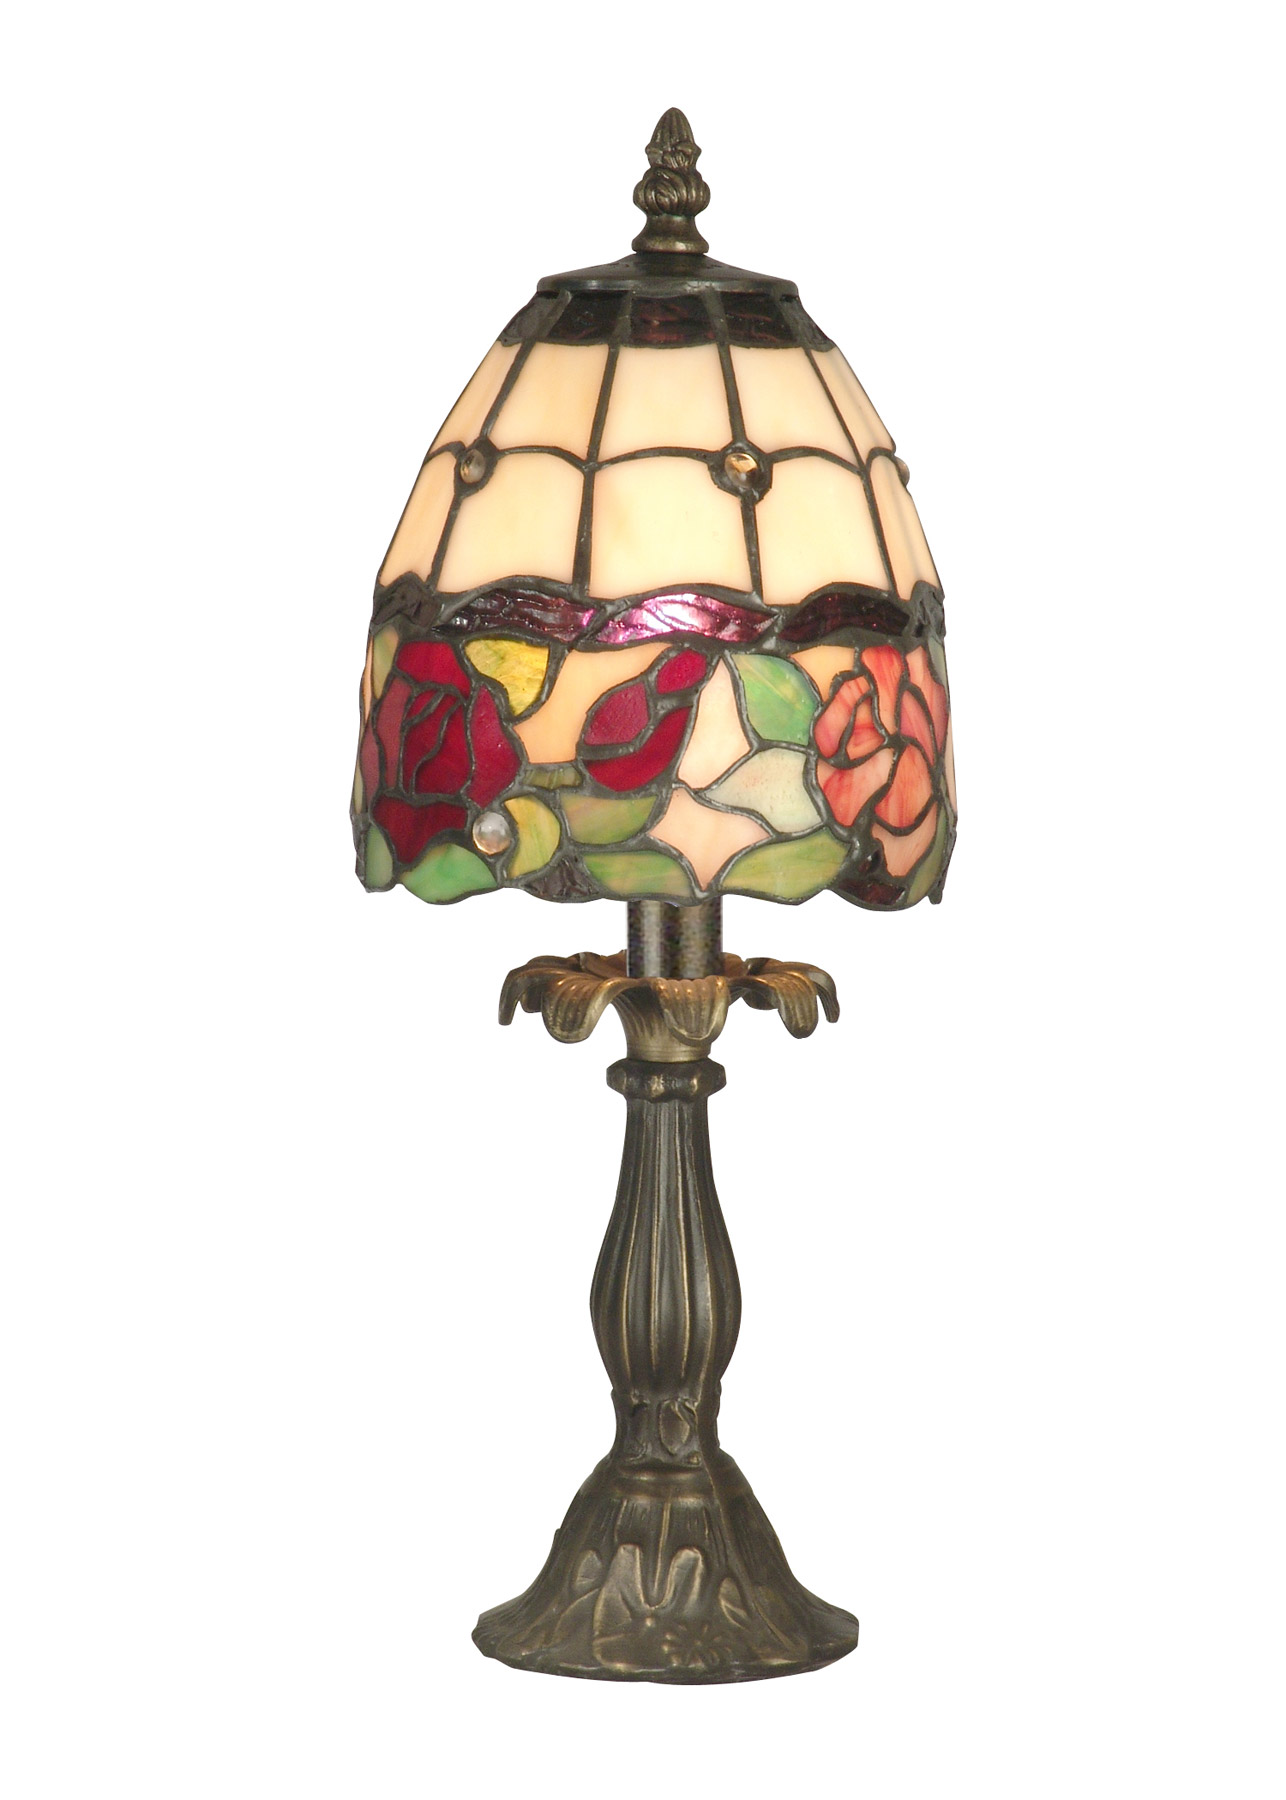 Dale Tiffany Ta70711 Tiffany Enid Miniature Accent Lamp